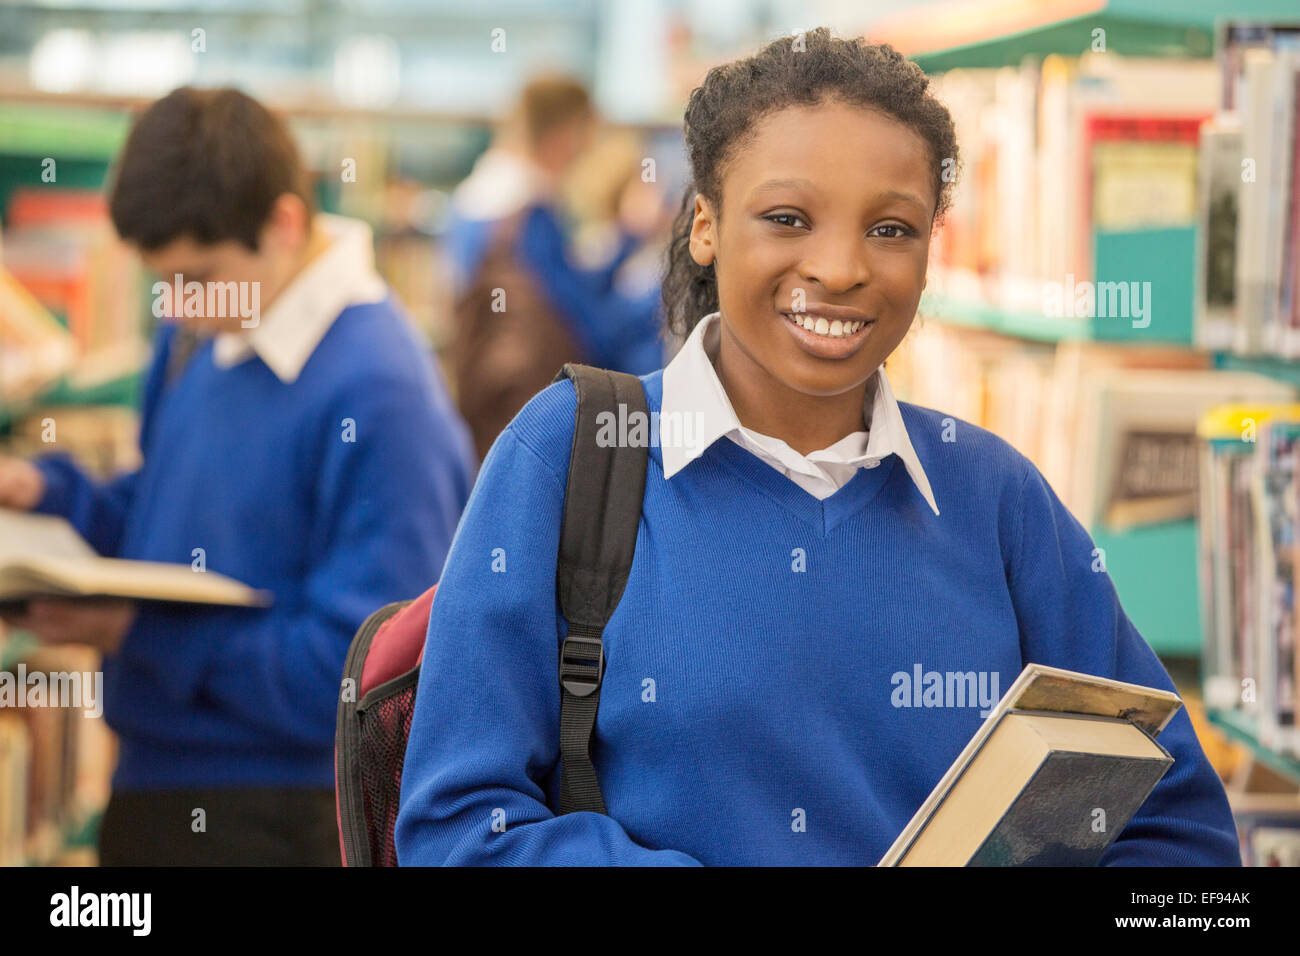 Portrait of smiling female student holding books in library - Stock Image